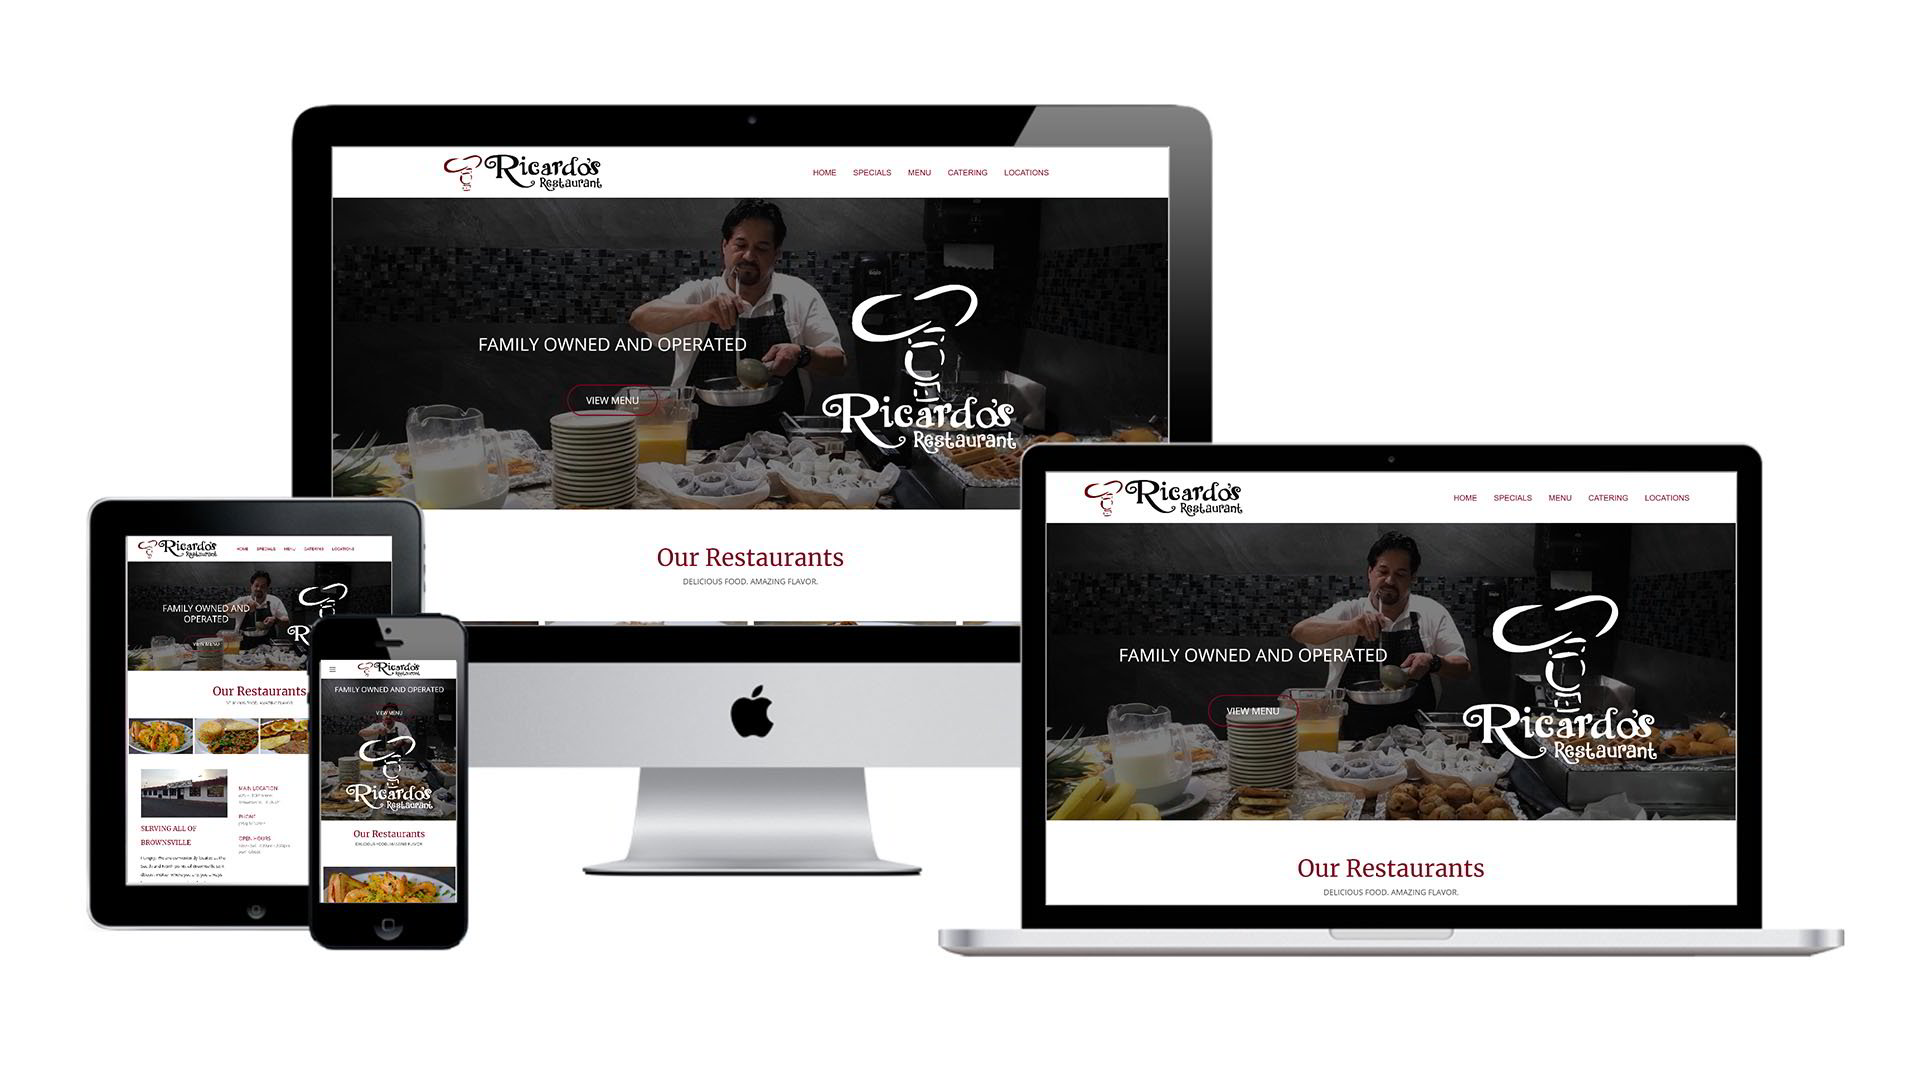 Ricardo's Restaurant Website